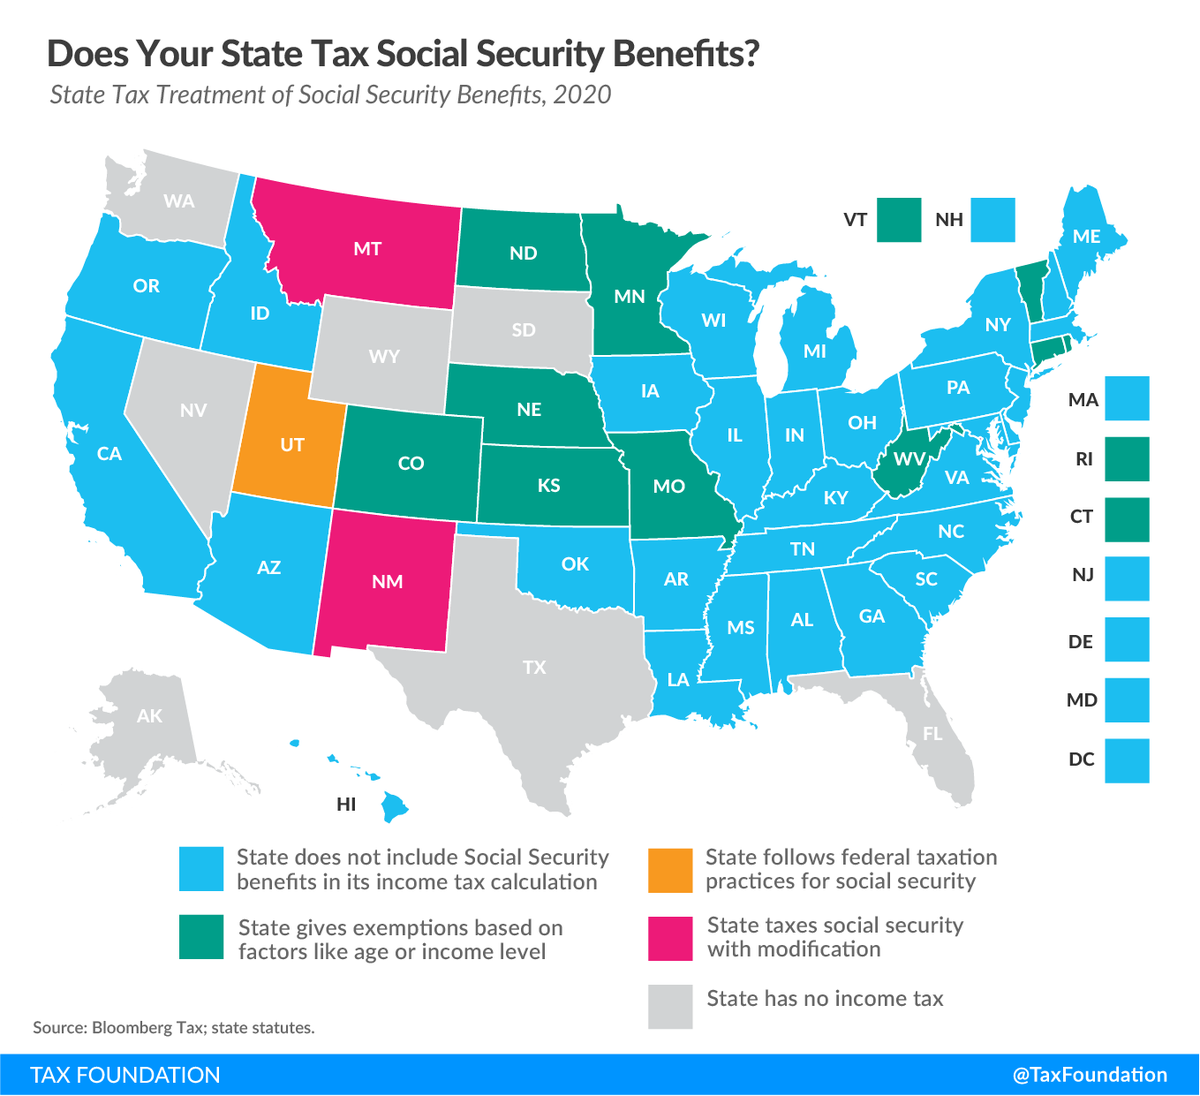 Does your state tax social security benefits?